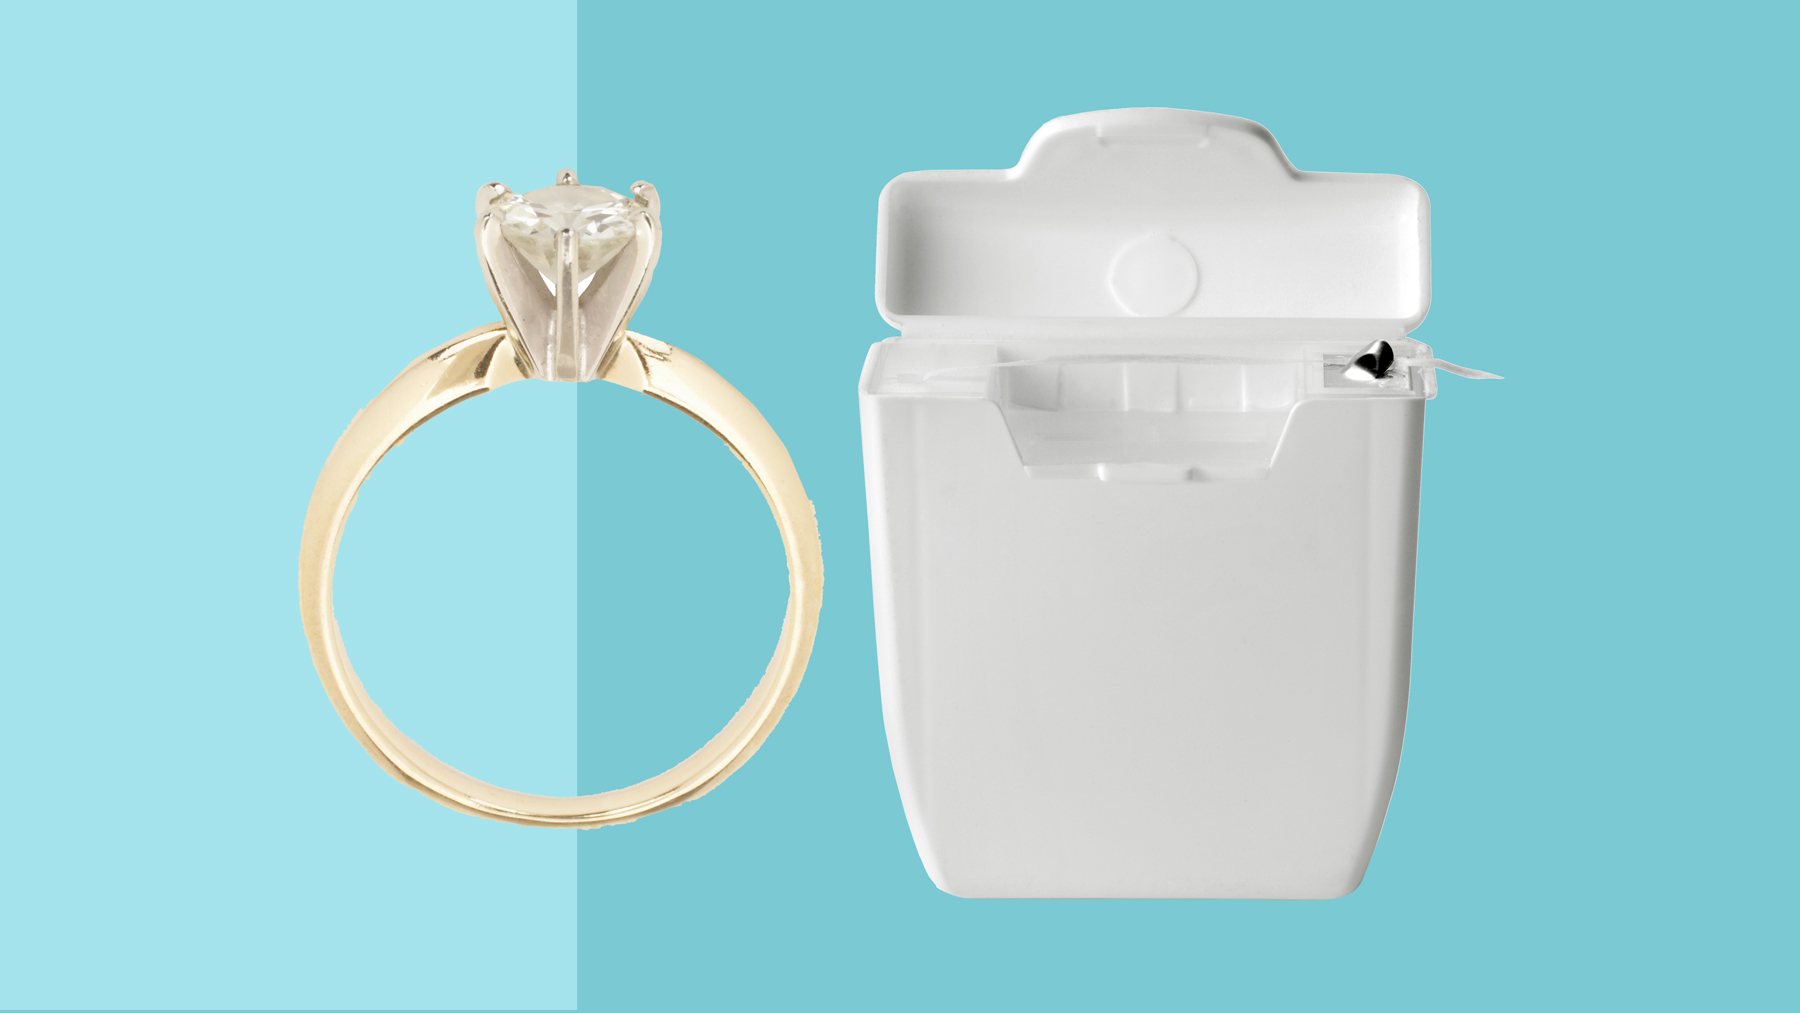 How to measure ring size at home - three ways to measure for men and women